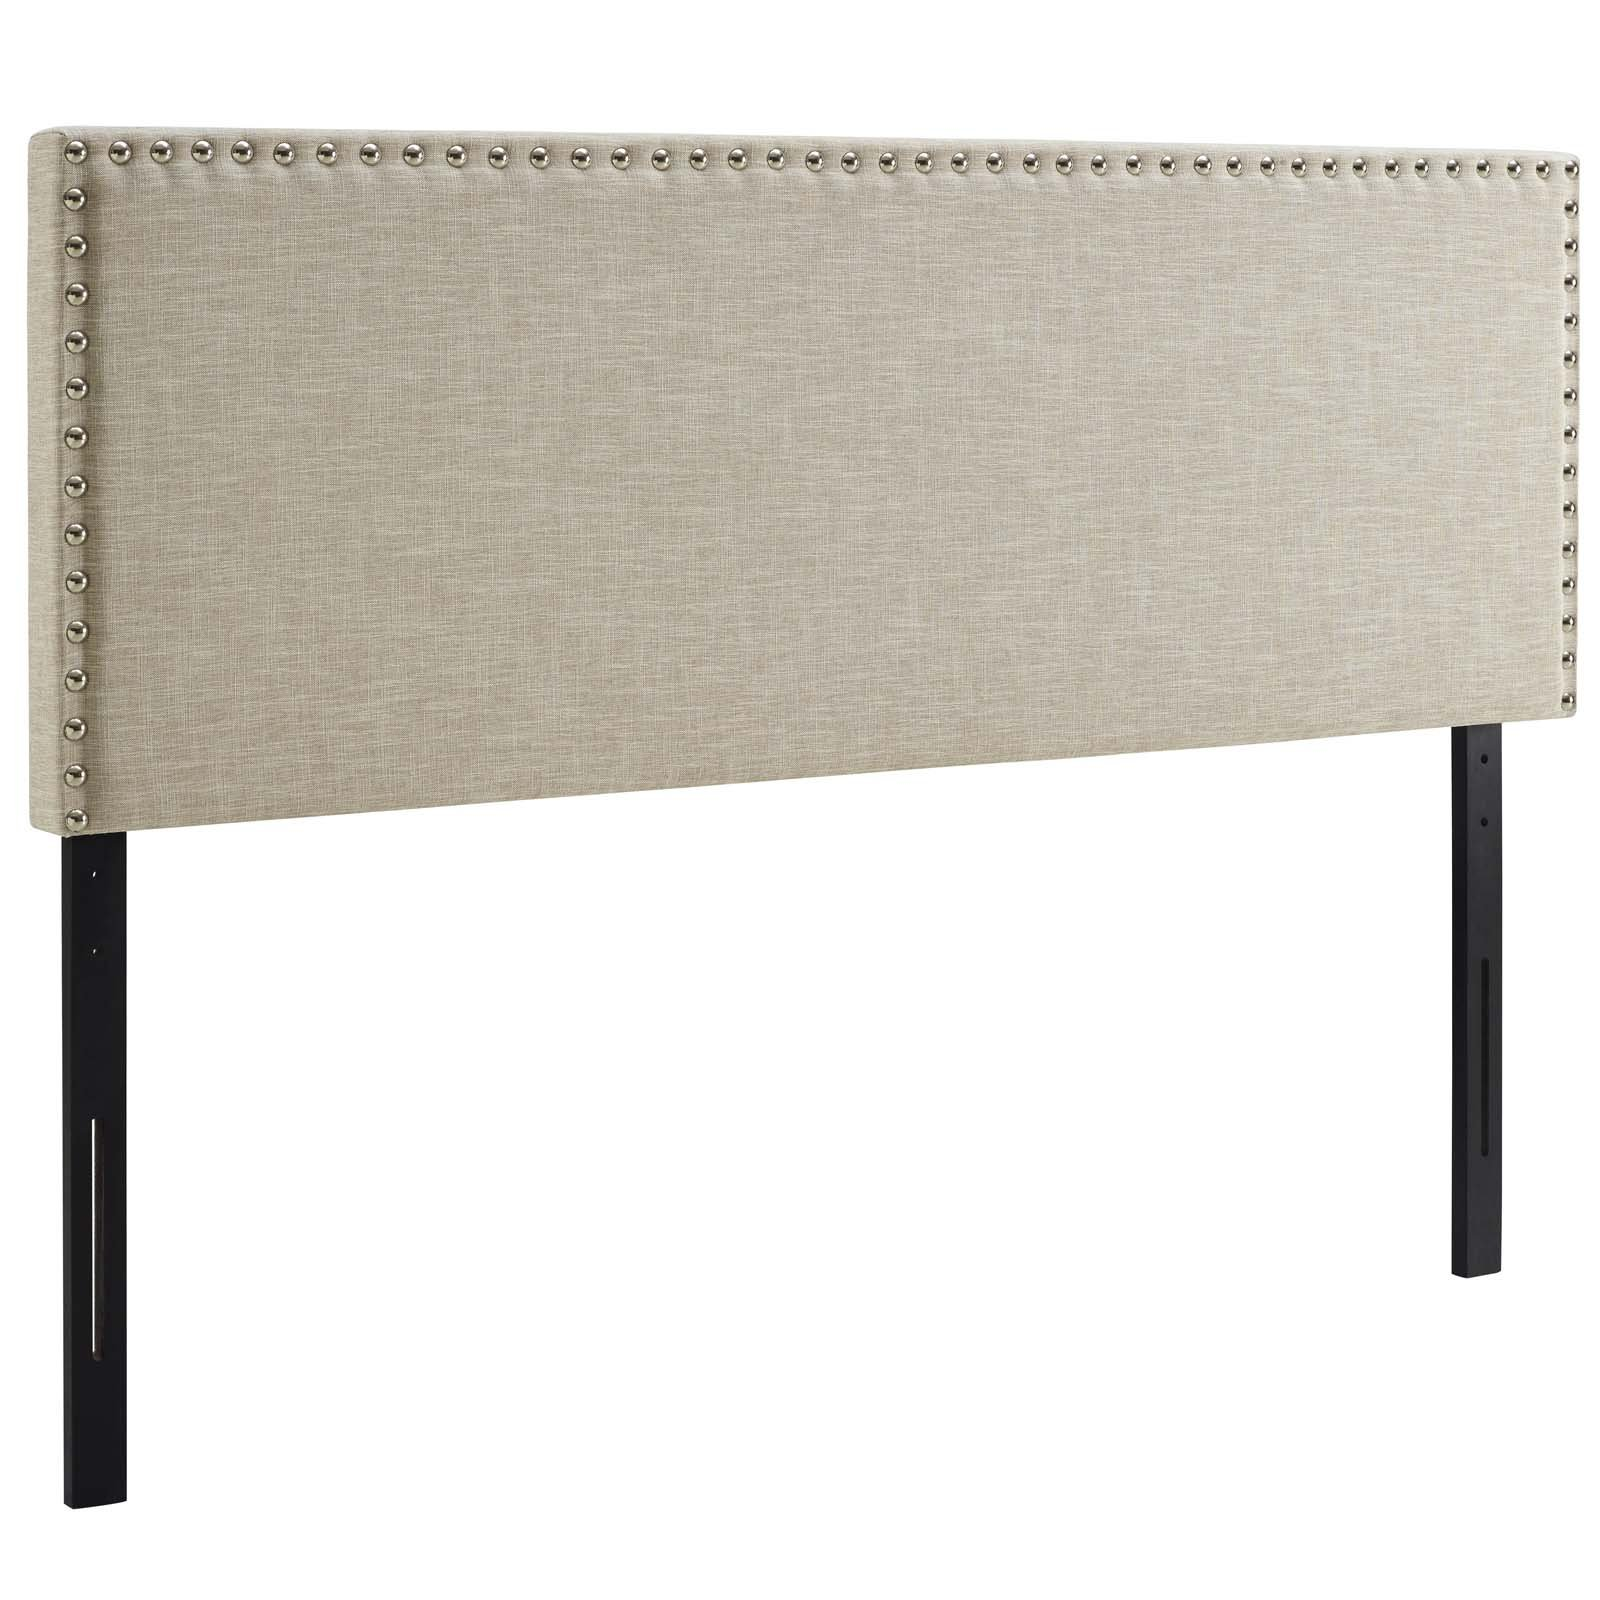 Modway MOD-5384-BEI Phoebe Upholstered Full Fabric Headboard Size with Nailhead Trim in Beige